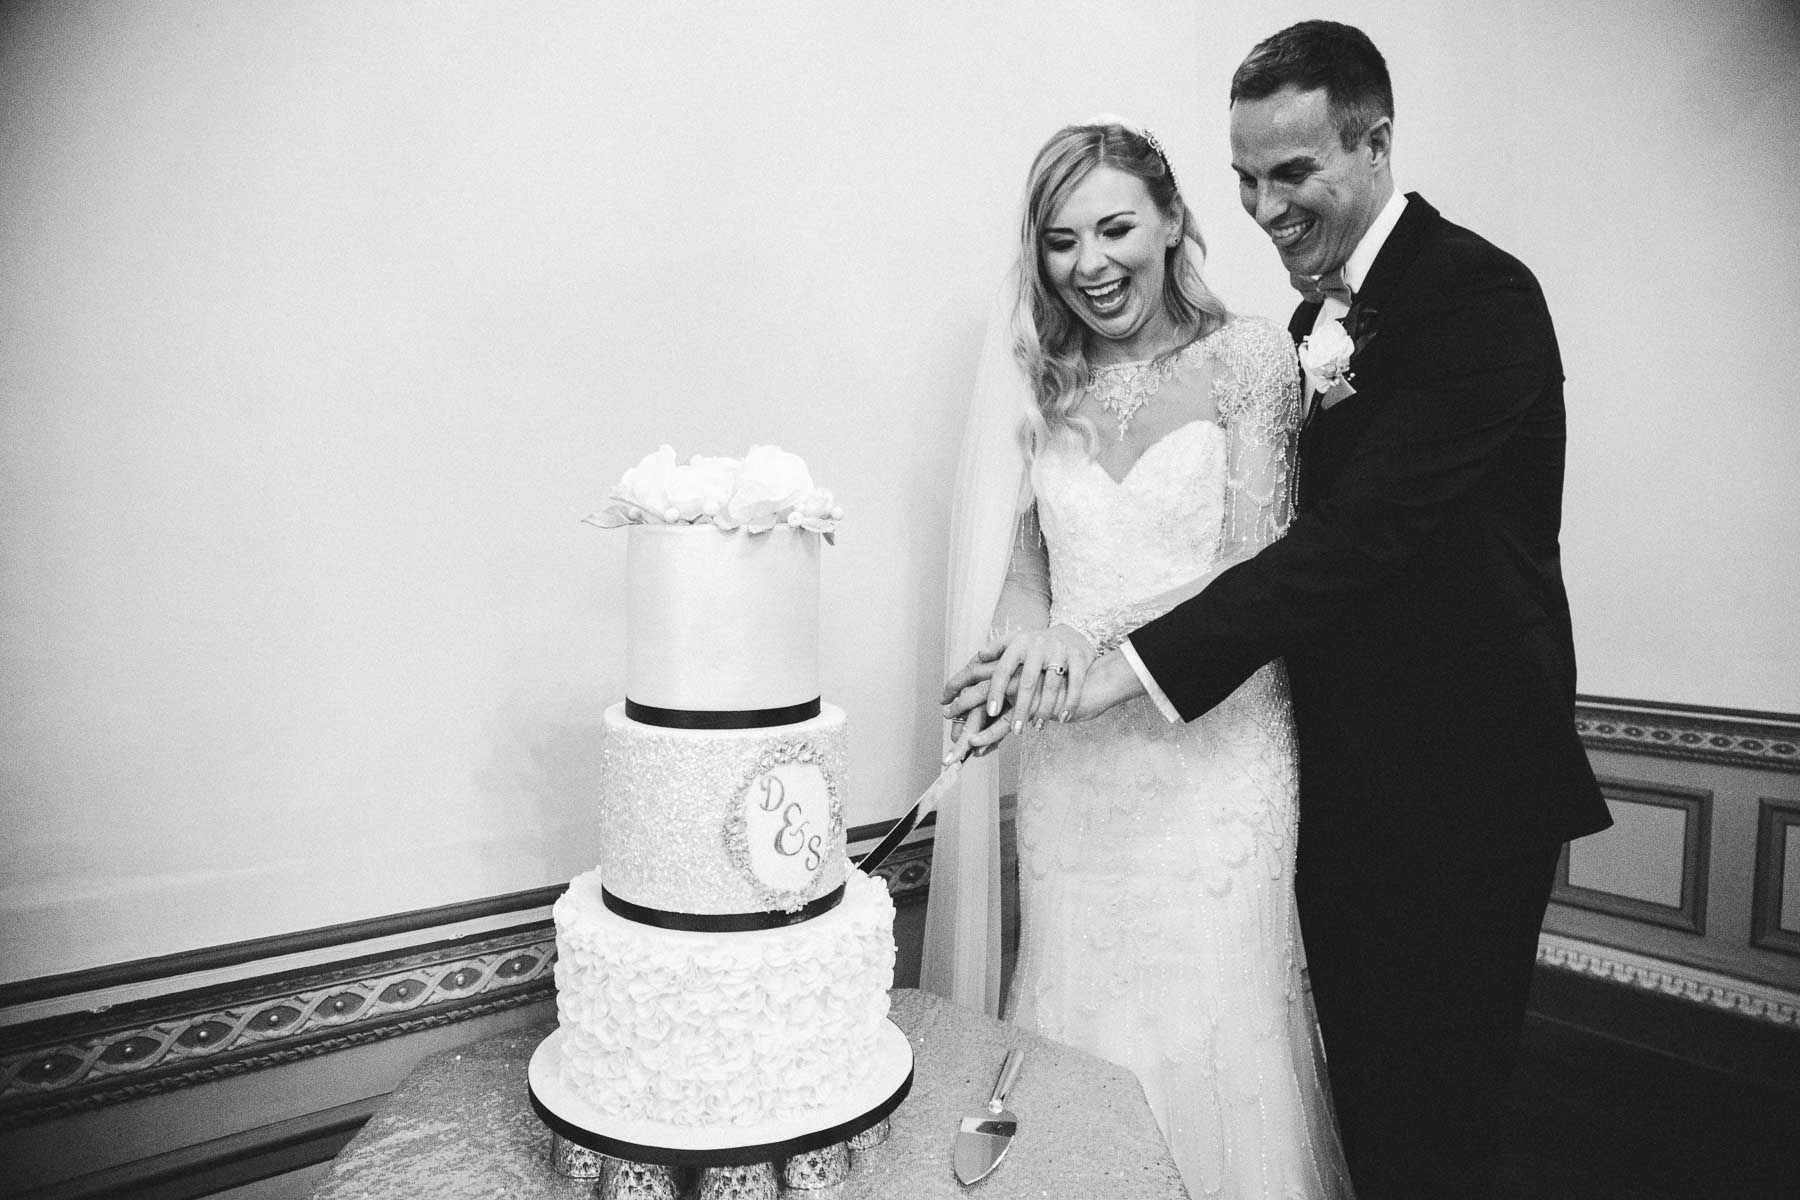 Danielle and steve cutting the cake at delapre abbey